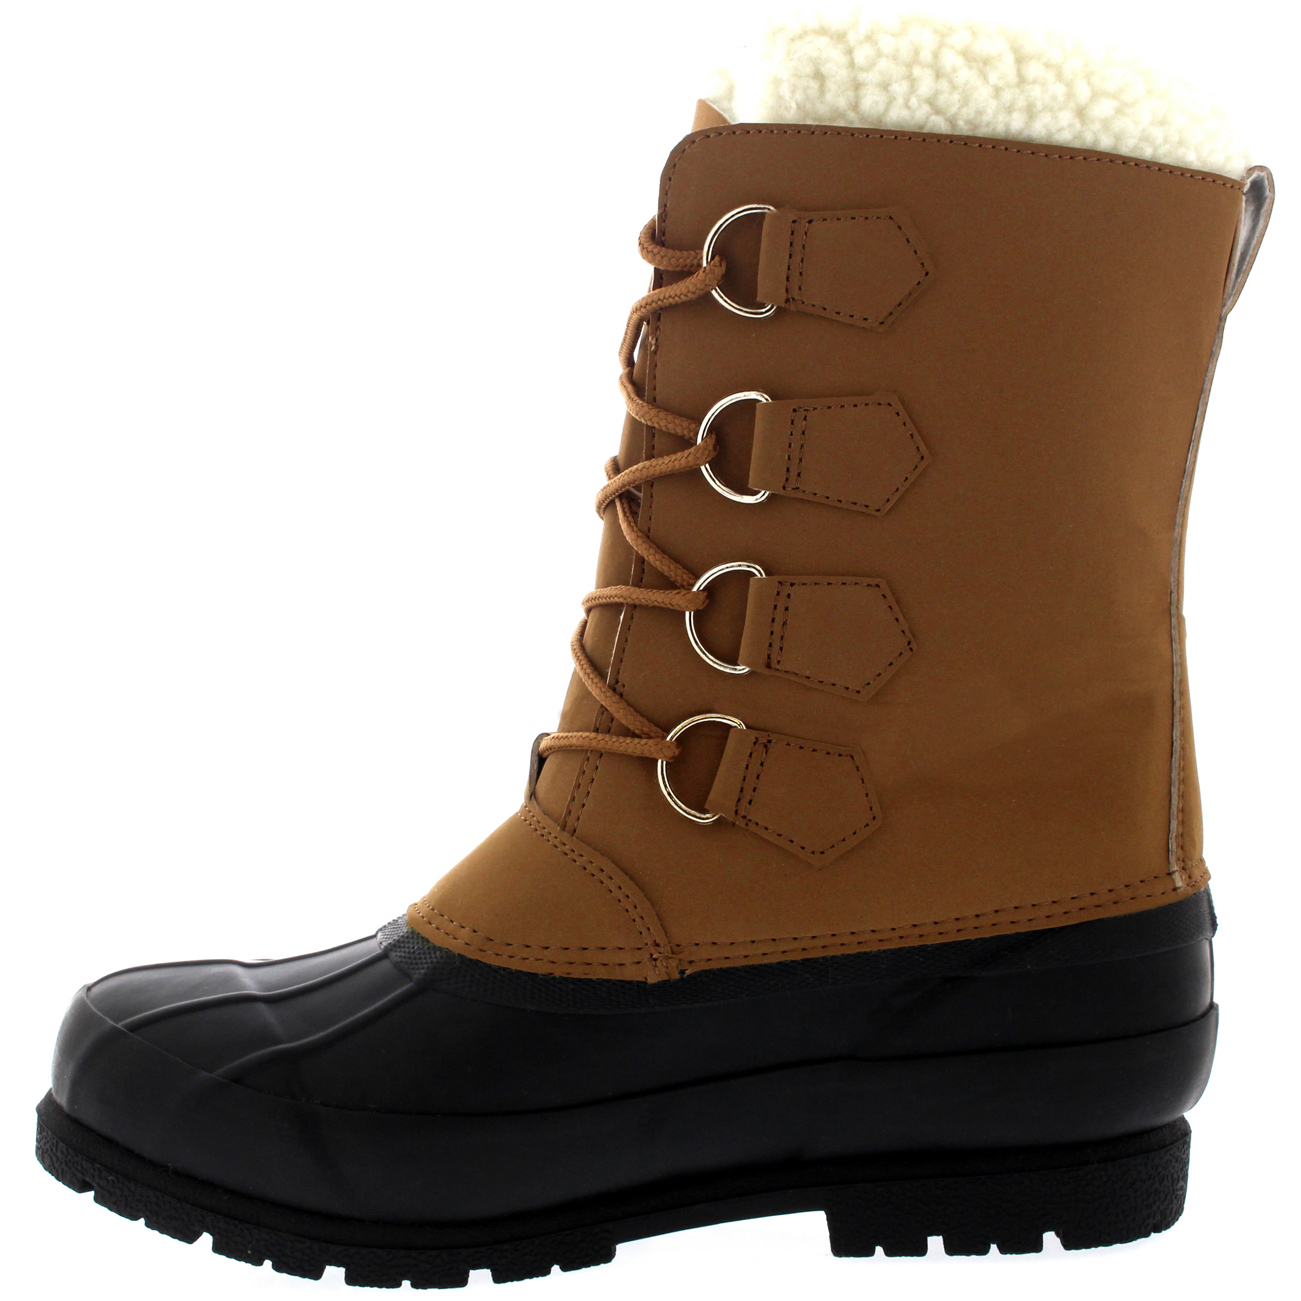 Best Winter Boots For Snow And Cold | Illinois Institute of Technology